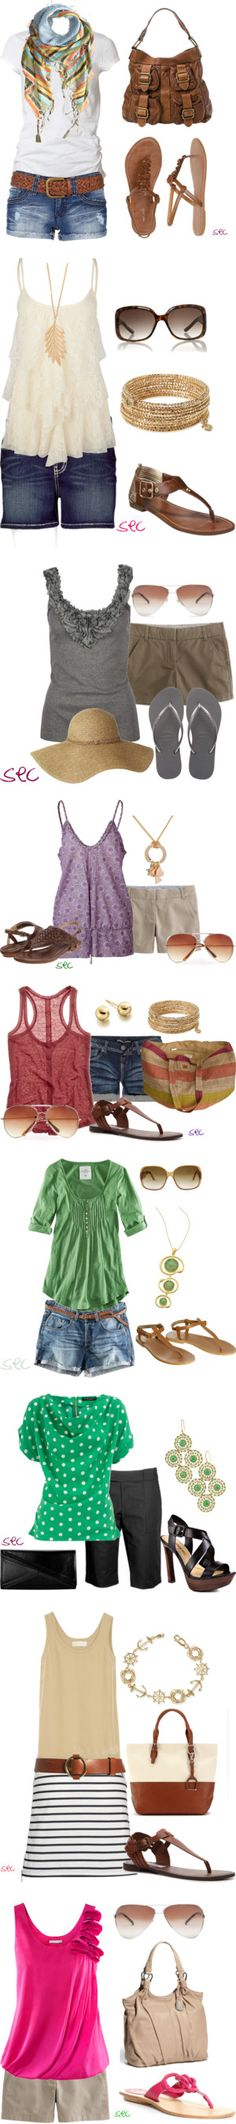 Super cute outfits for summer!